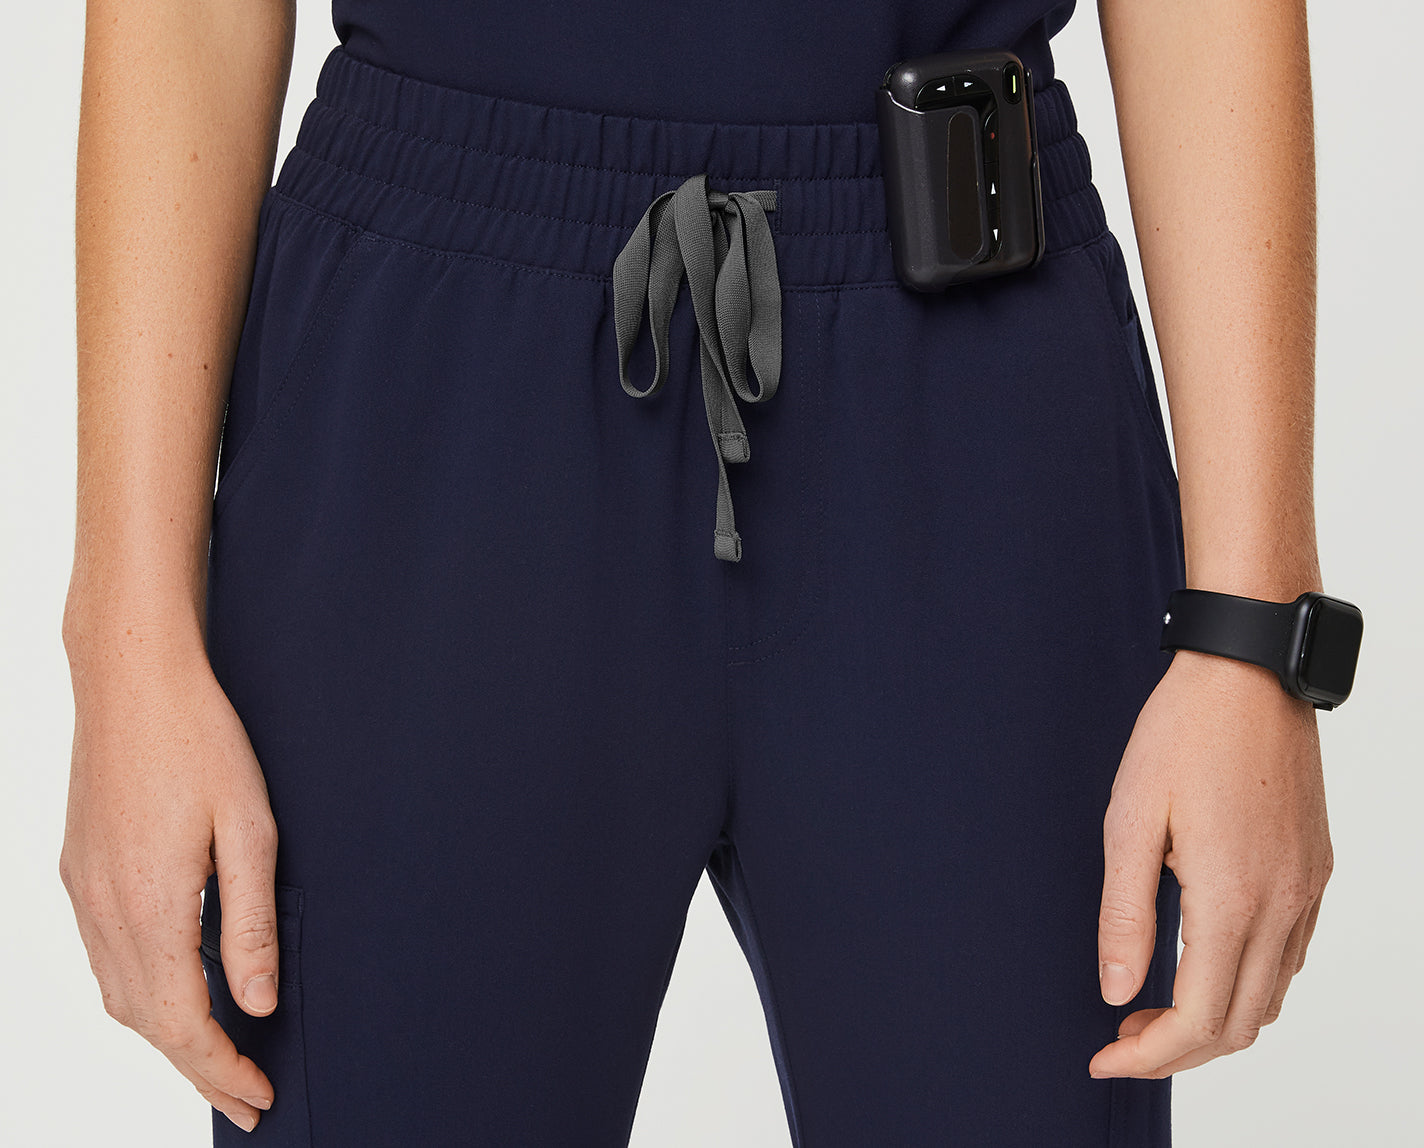 Some pants really do have it all. The High Waisted Yola features a slim fit, eleven purposeful pockets, side-slit ankles and, of course, a new high rise, half elastic waistband.